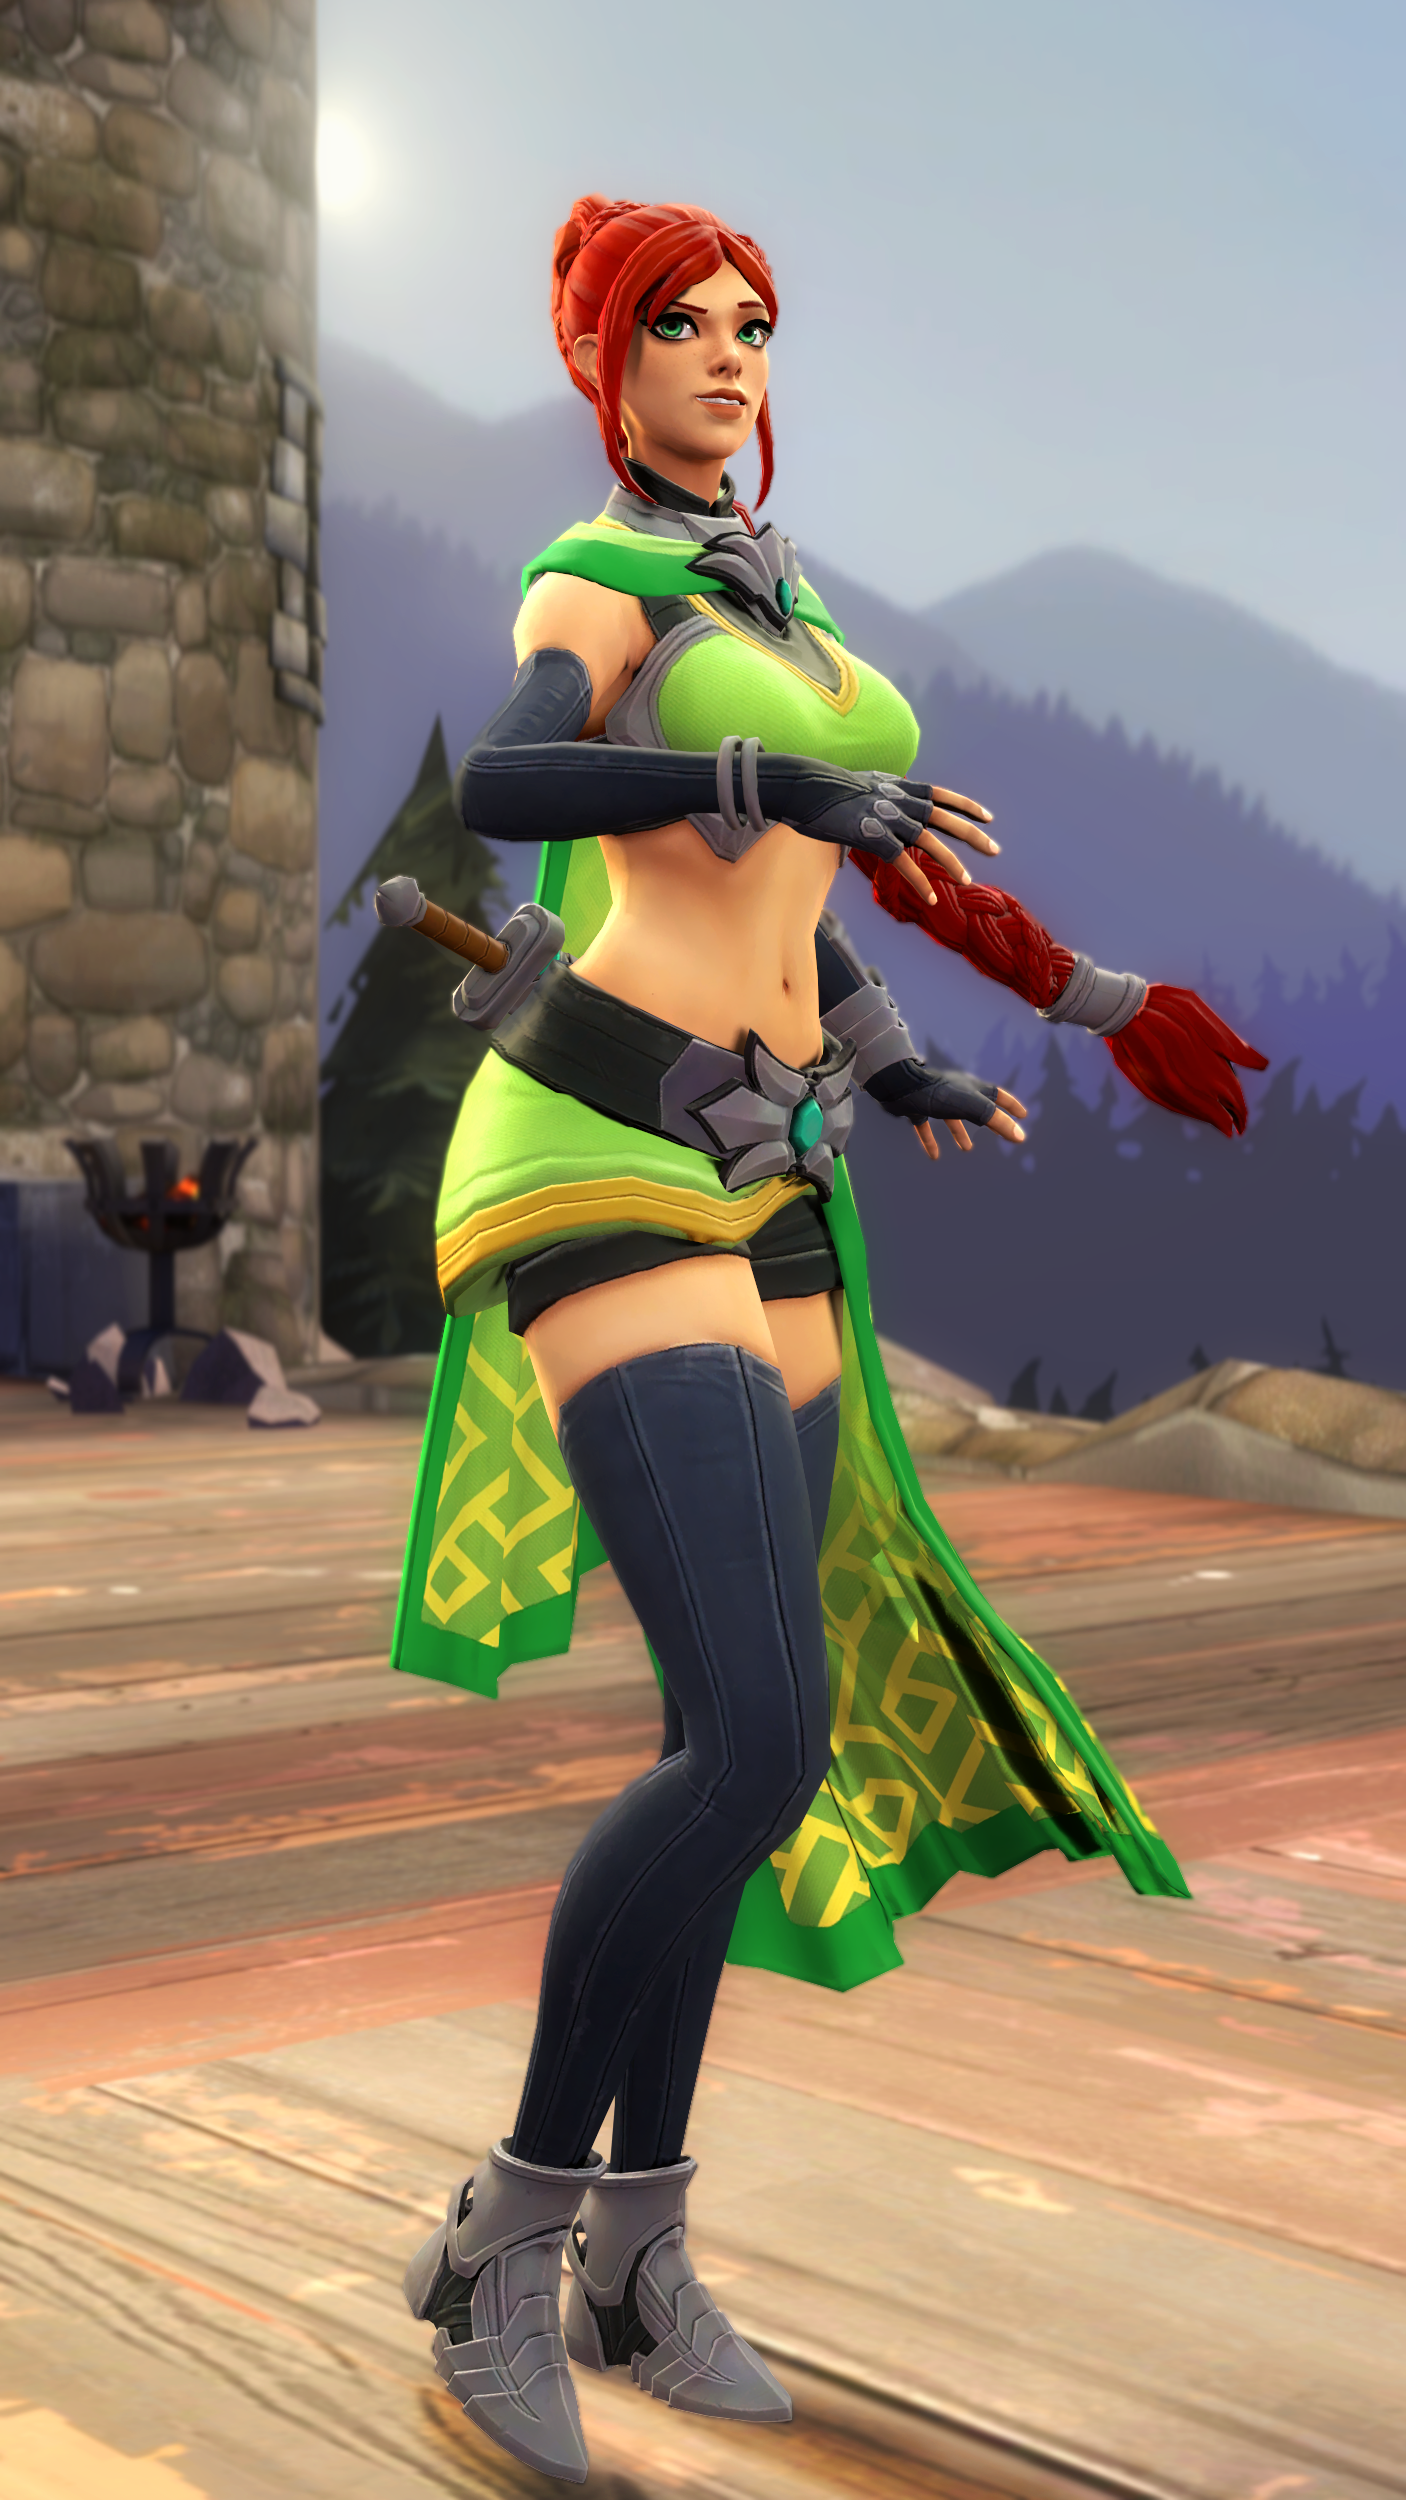 Paladins sfm porn - Showing media posts for paladins compilation xxx png  1406x2500